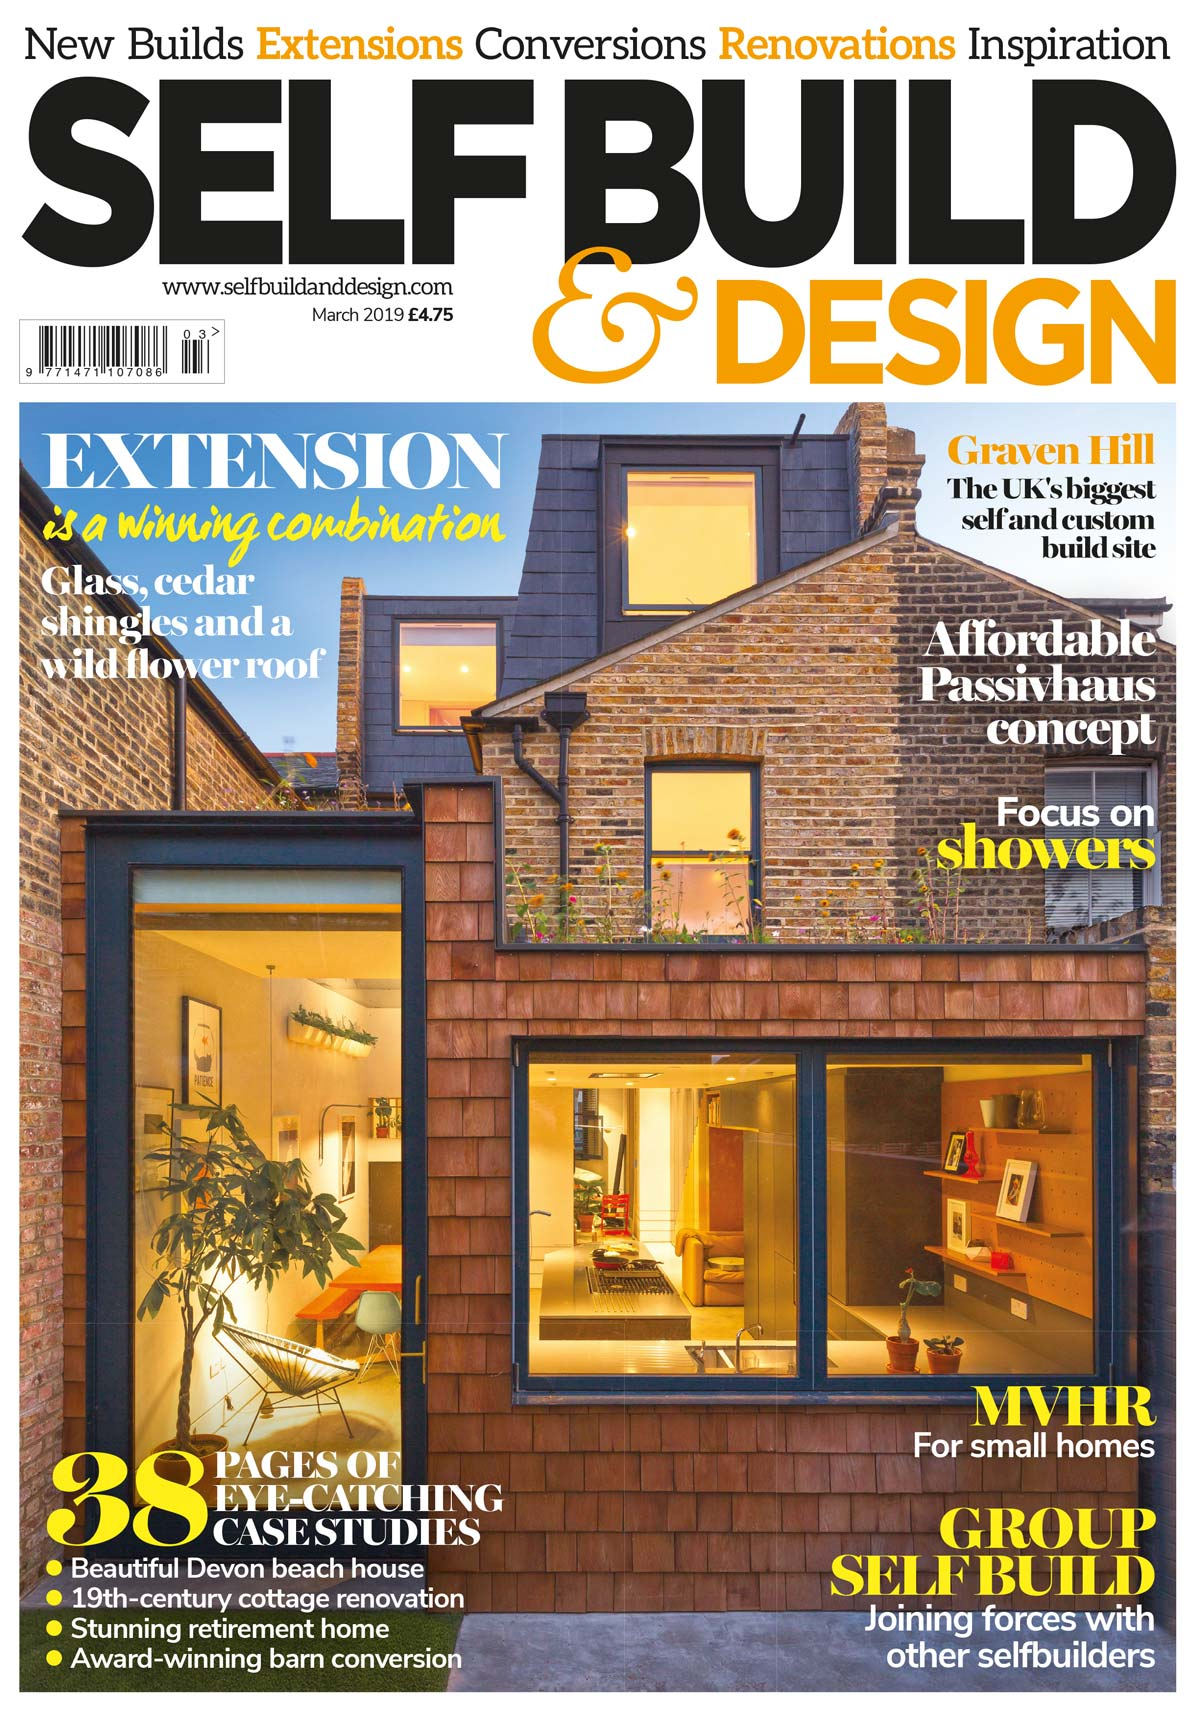 Selfbuild & Design March 2019